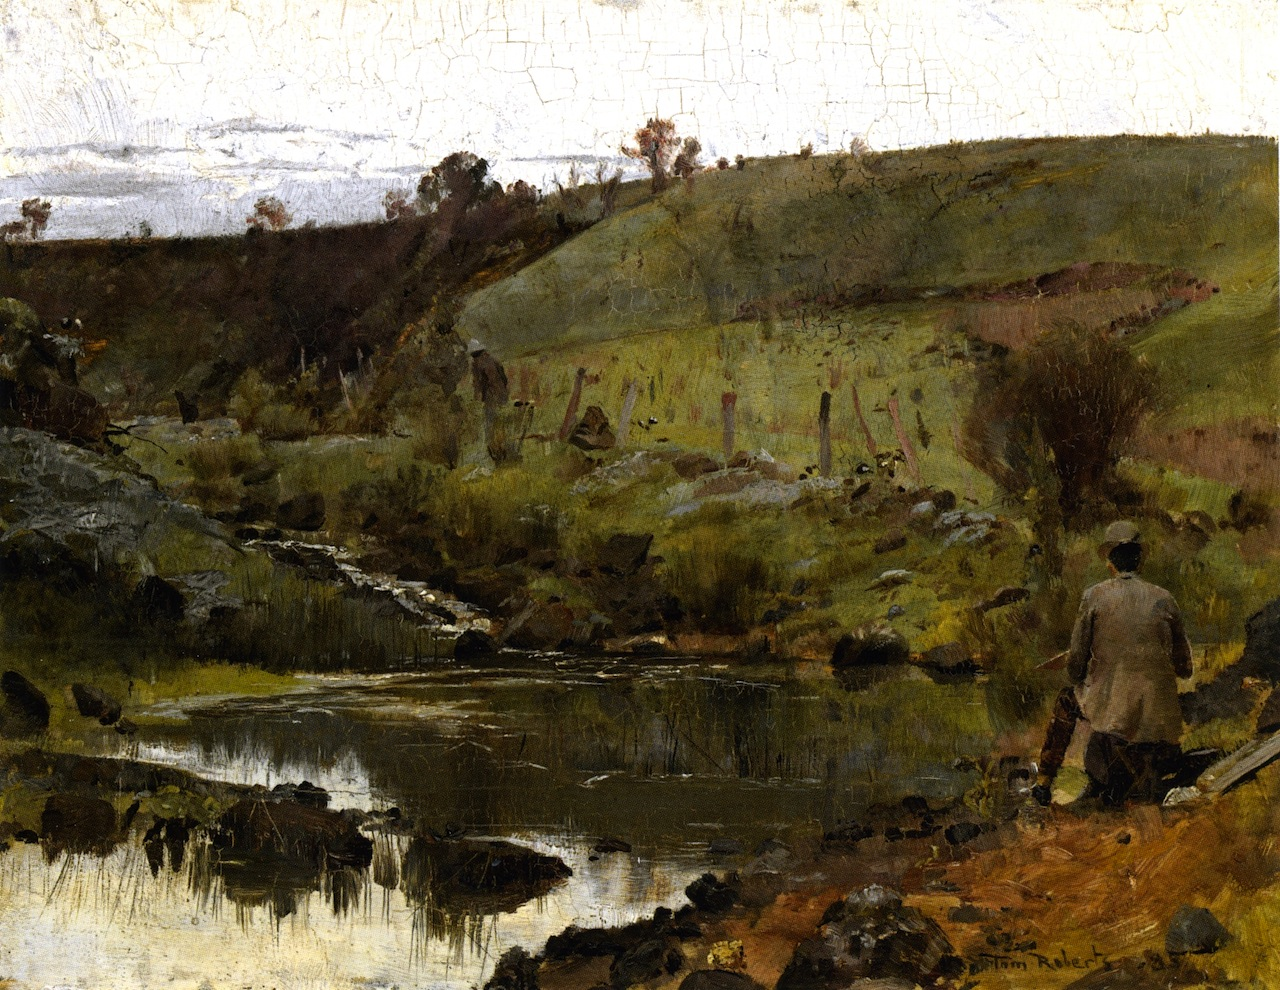 A Quiet Day on the Darebin Creek, 1885